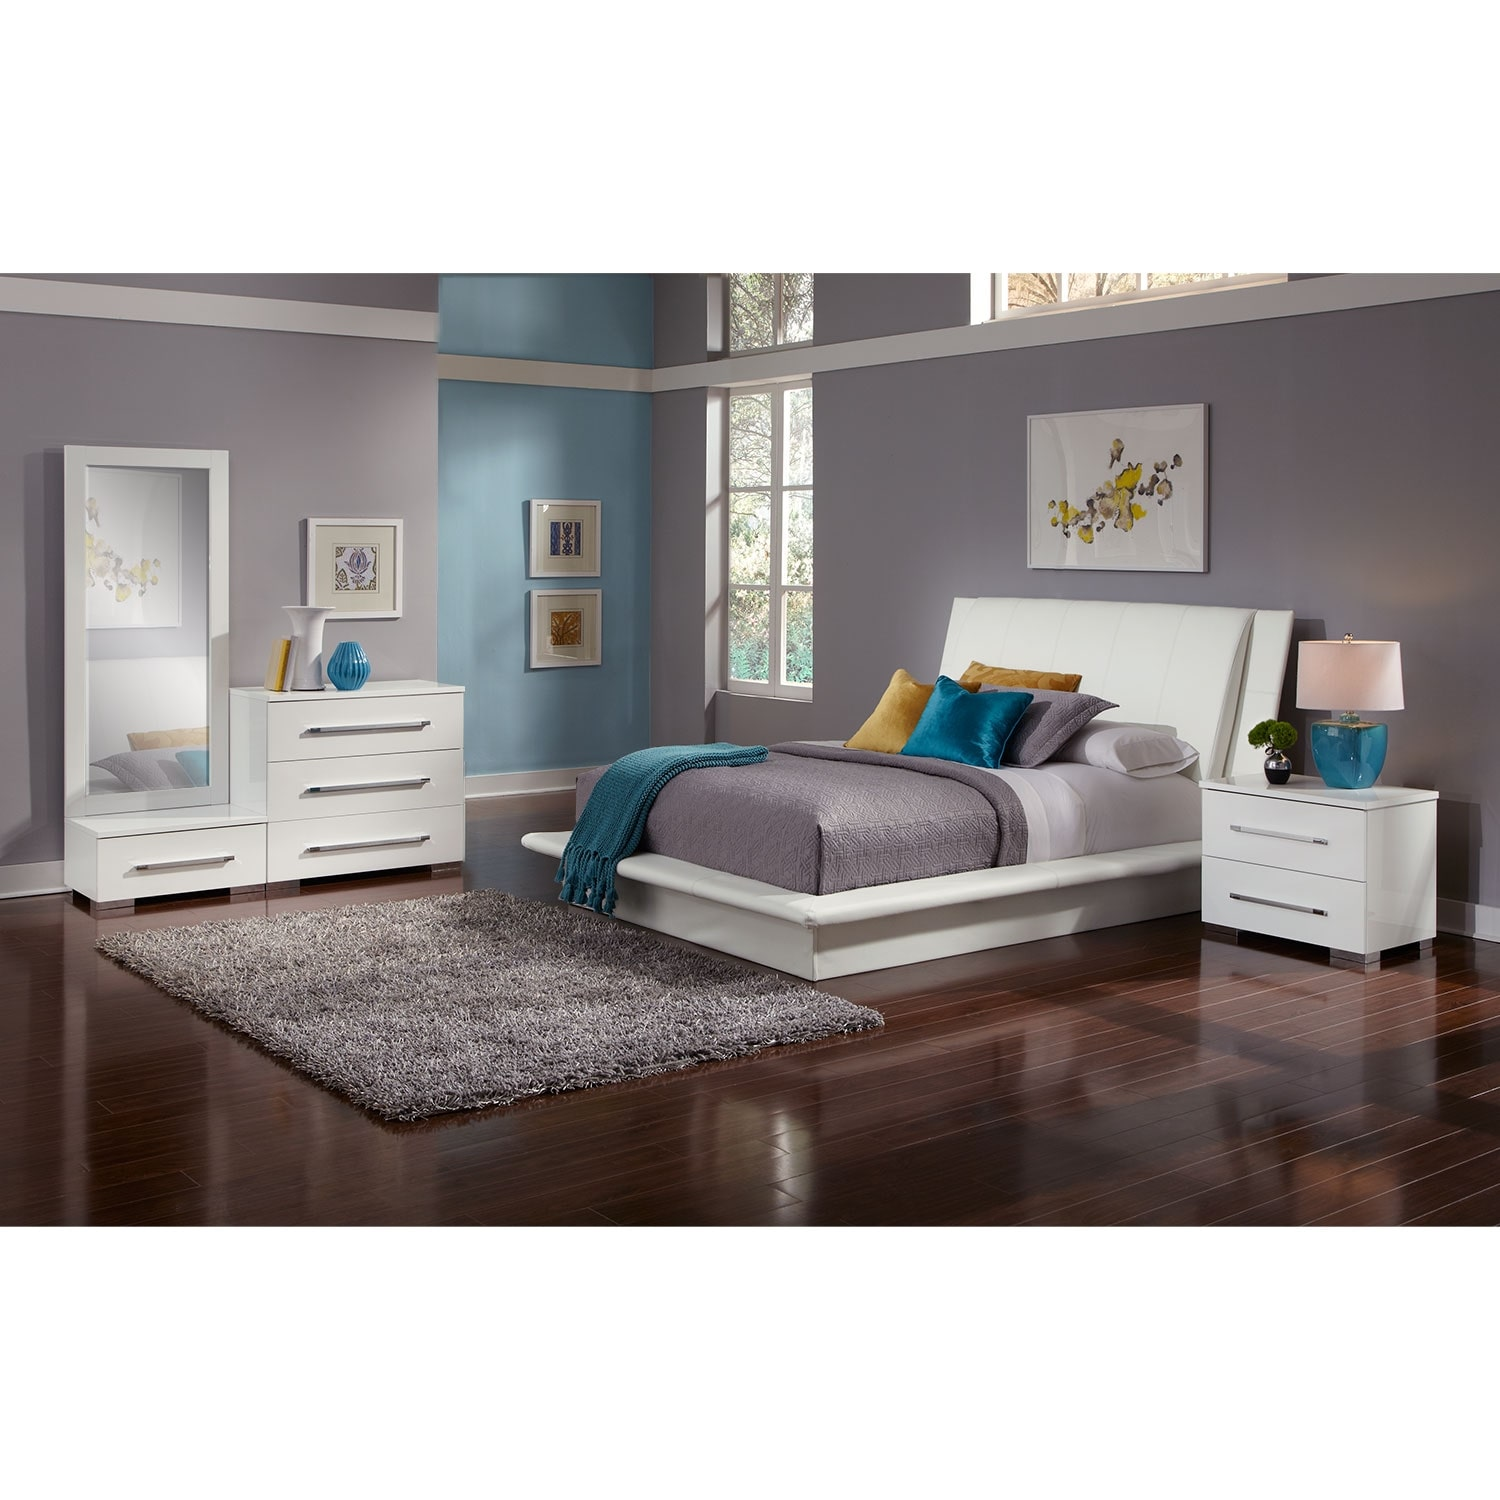 Bedroom Furniture - Dimora 6-Piece Queen Upholstered Bedroom Set - White